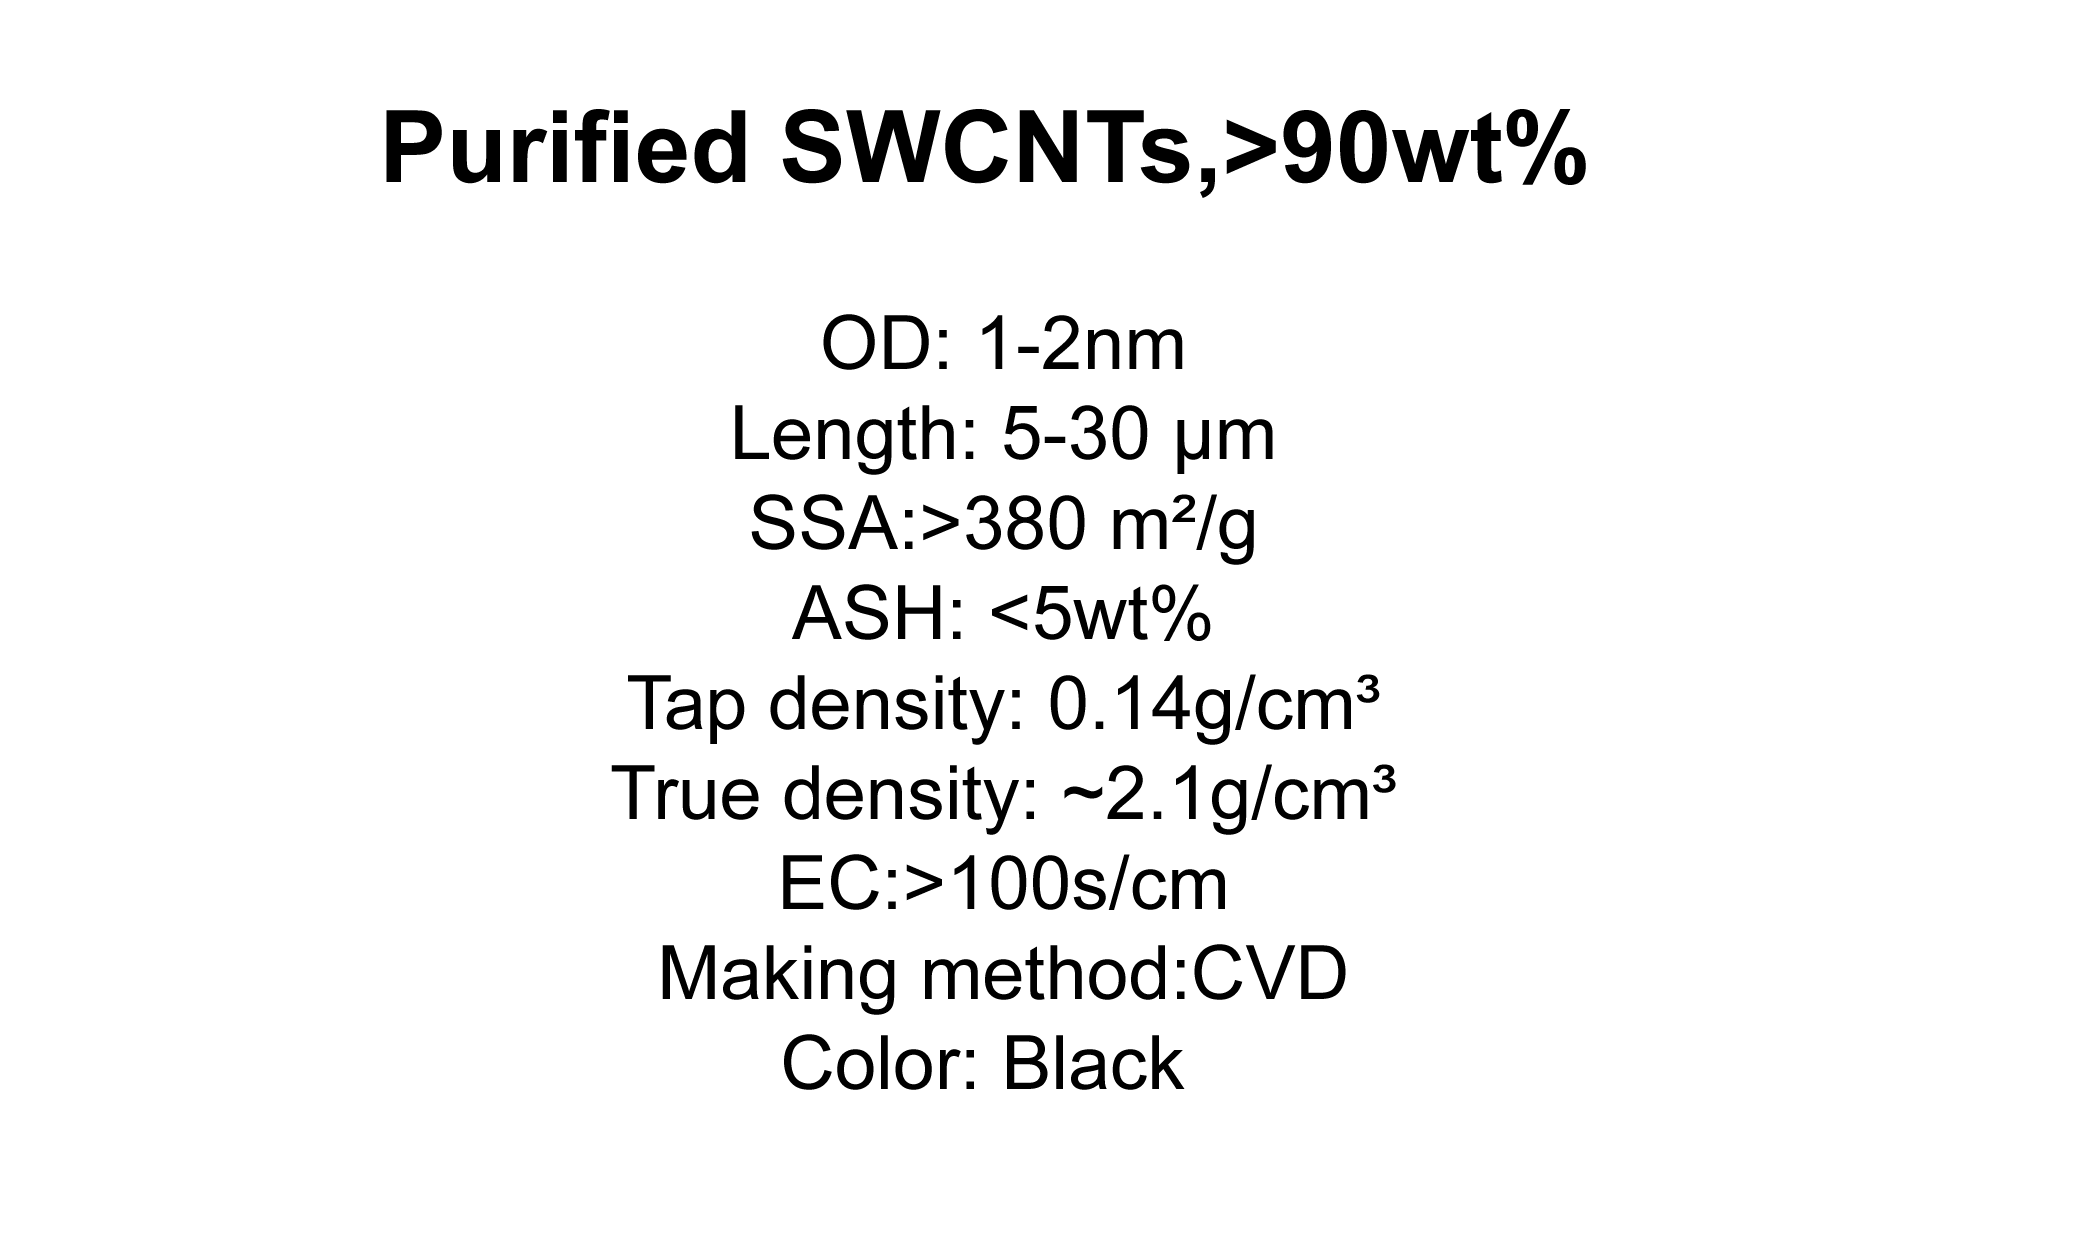 Purified SWCNTs,>90wt%